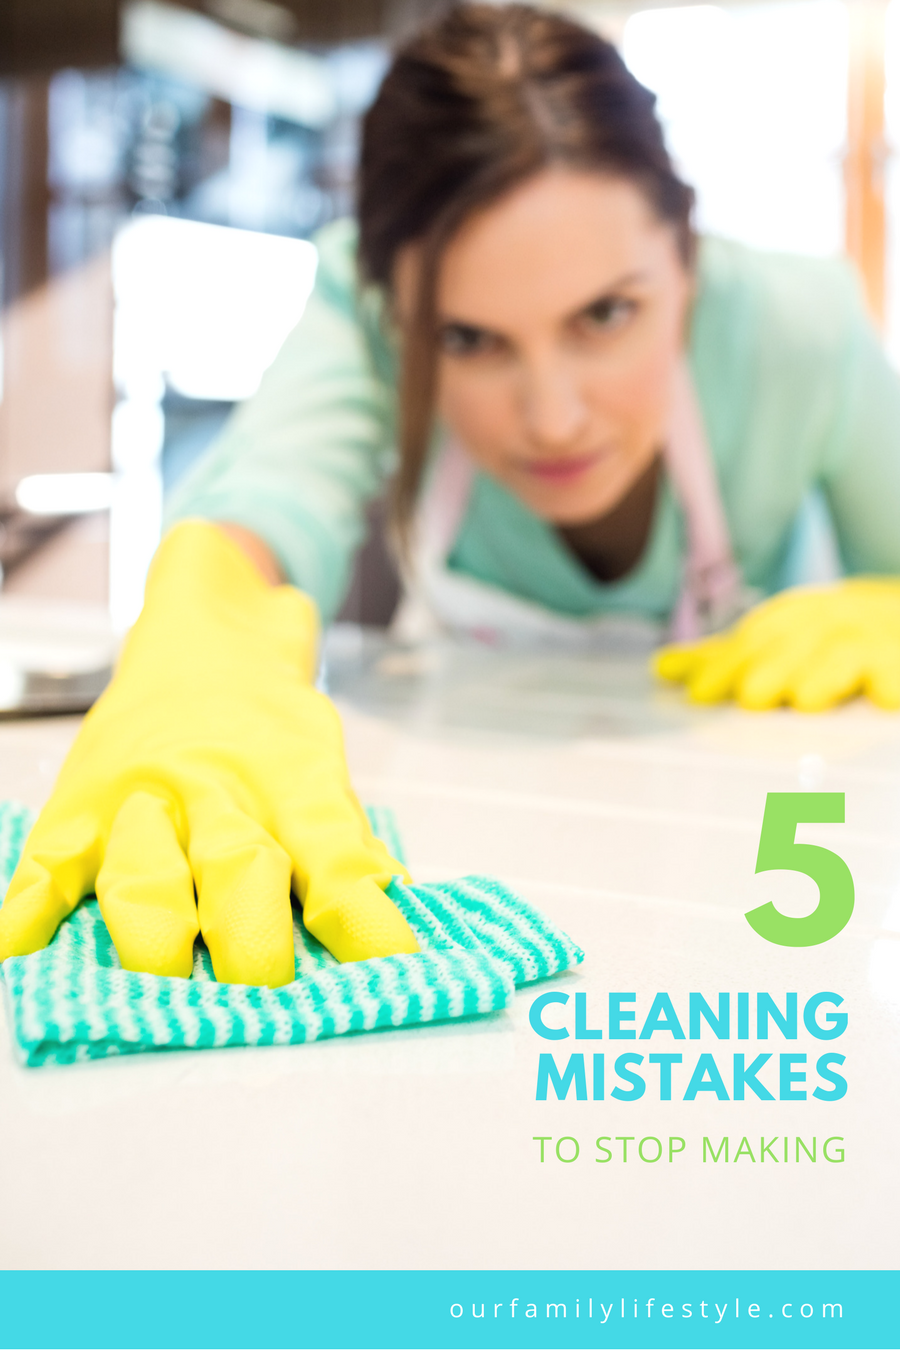 5 Cleaning Mistakes to Stop Making